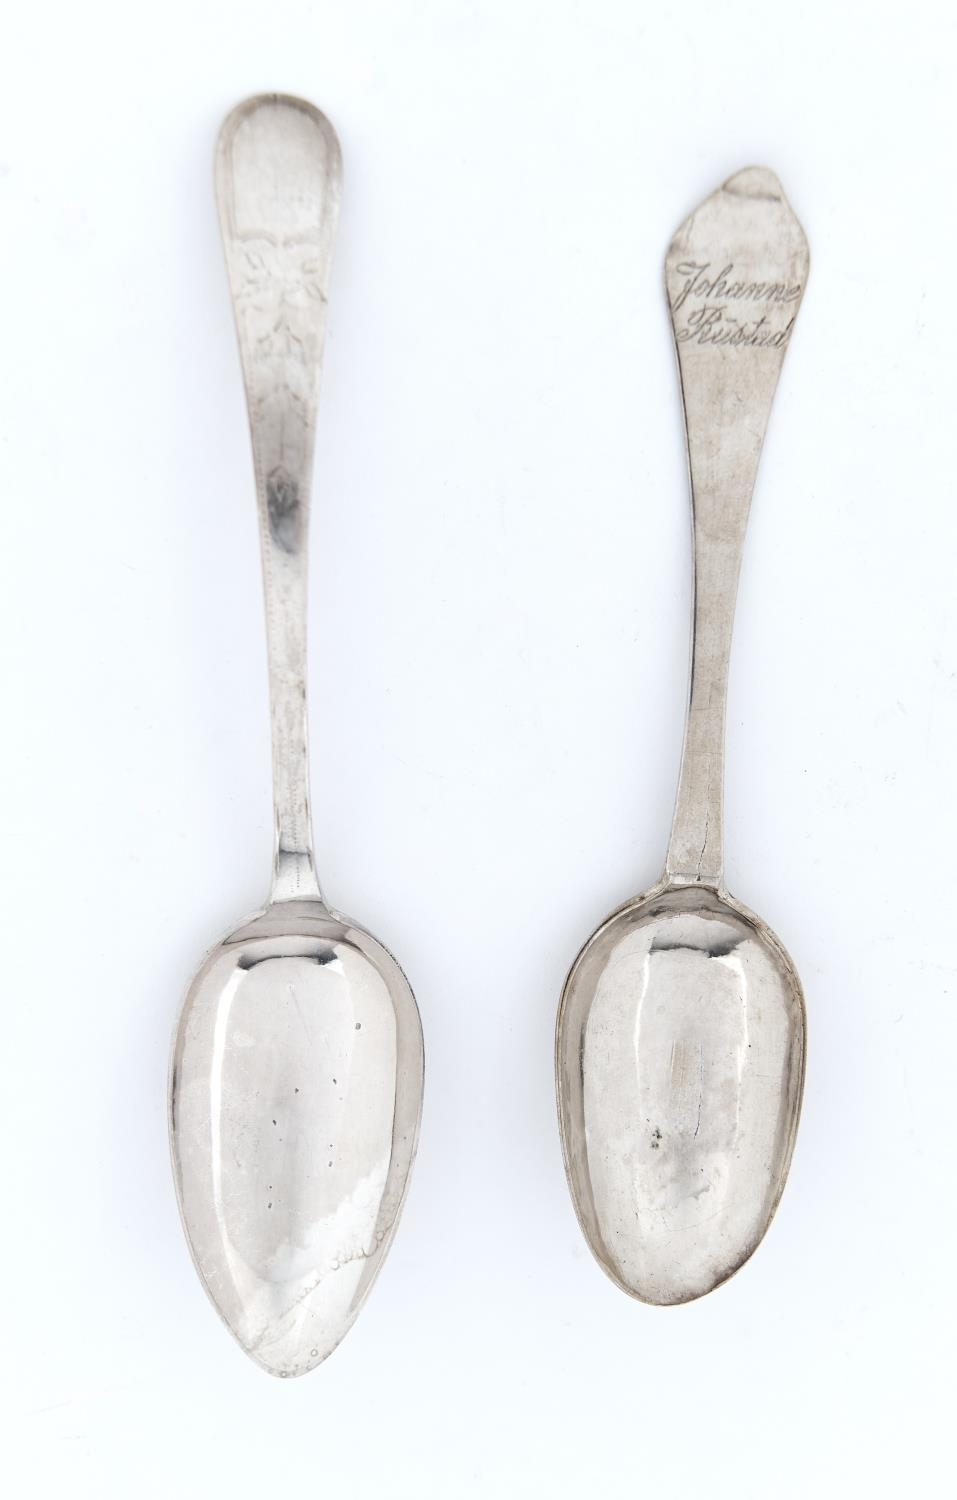 A DANISH SILVER SPOON, DOG NOSE PATTERN, THE BOWL ENGRAVED WITH A LEAF, INSCRIBED JOHAN BUSTAD, 18.